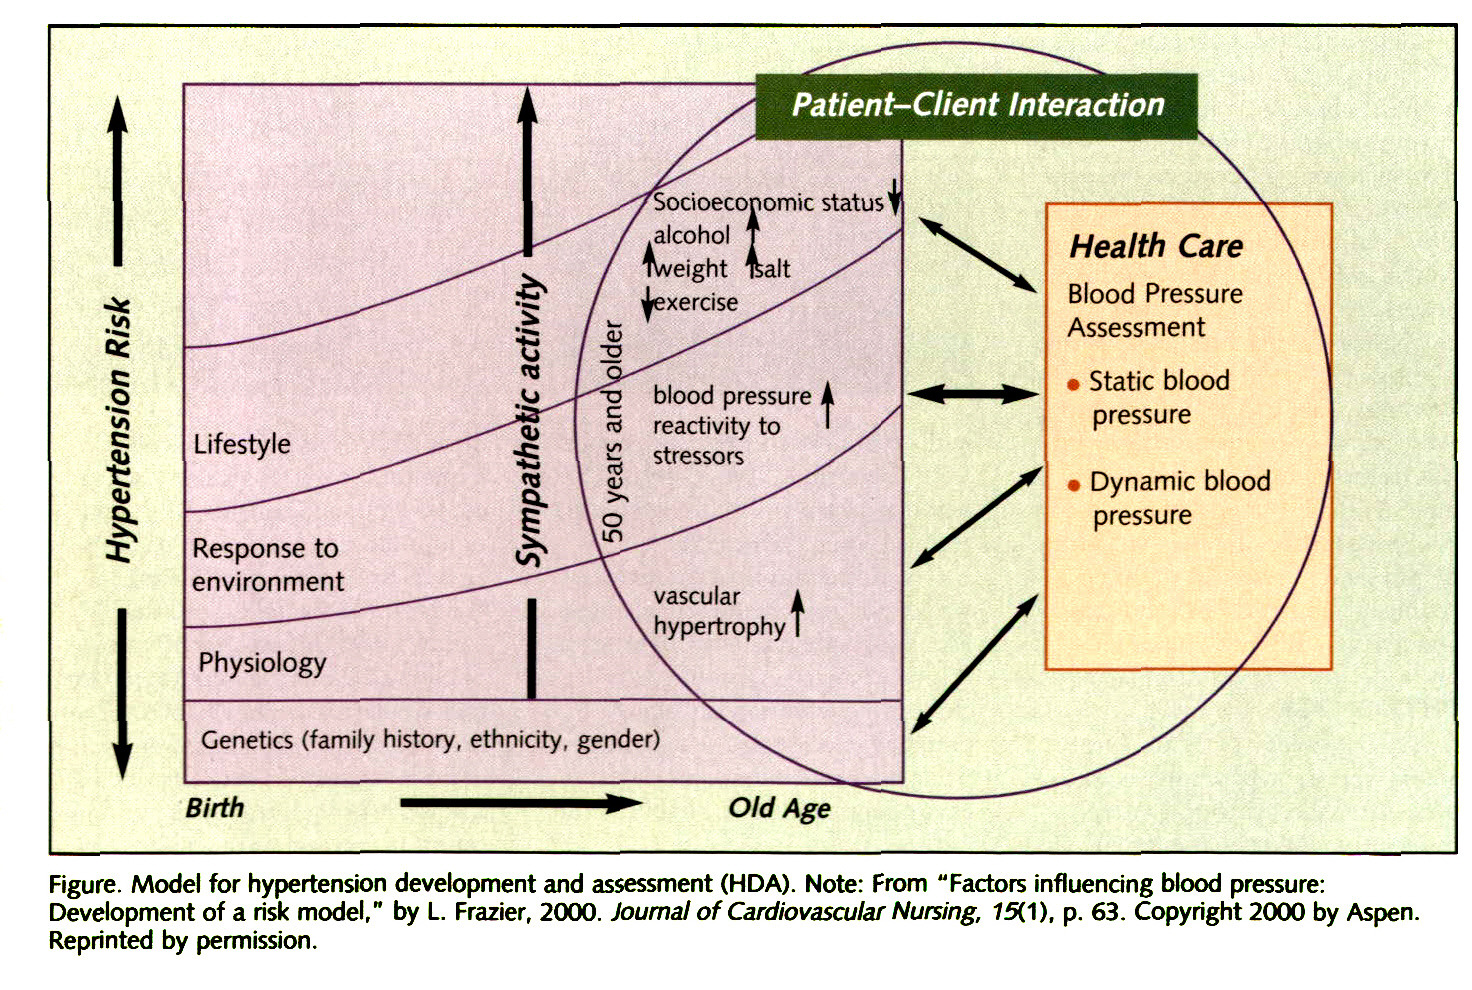 "Figure. Model for hypertension development and assessment (HDA). Note: From ""Factors influencing blood pressure: Development of a risk model,"" by L. Frazier, 2000. Journal of Cardiovascular Nursing, 75(1), p. 63. Copyright 2000 by Aspen. Reprinted by permission."